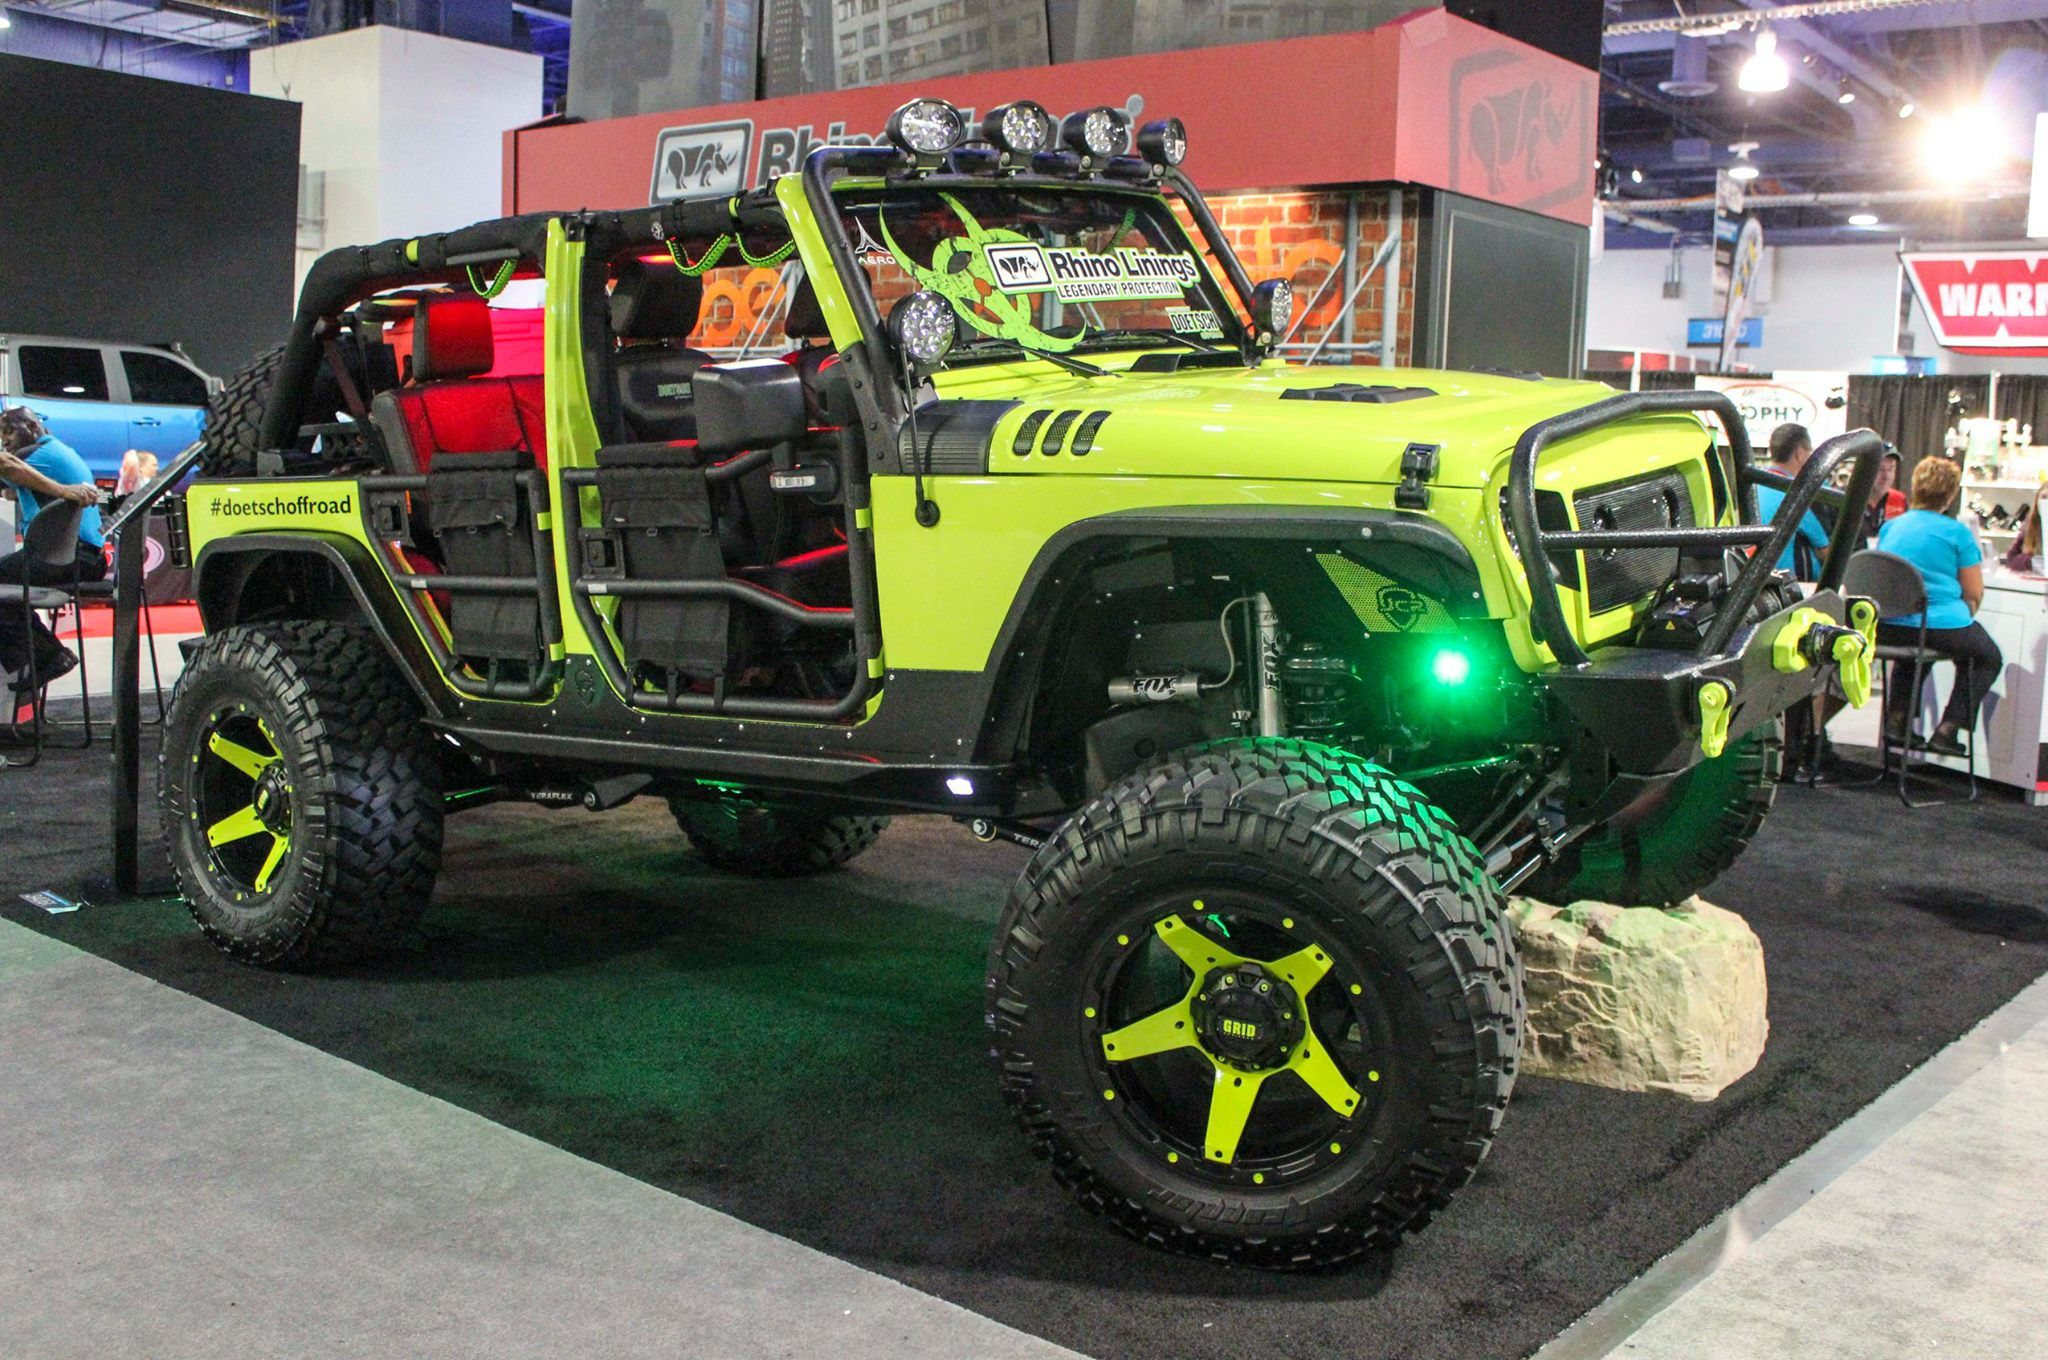 Decked Out Rhino Lining Jeep Wrangler Love All The Amazing